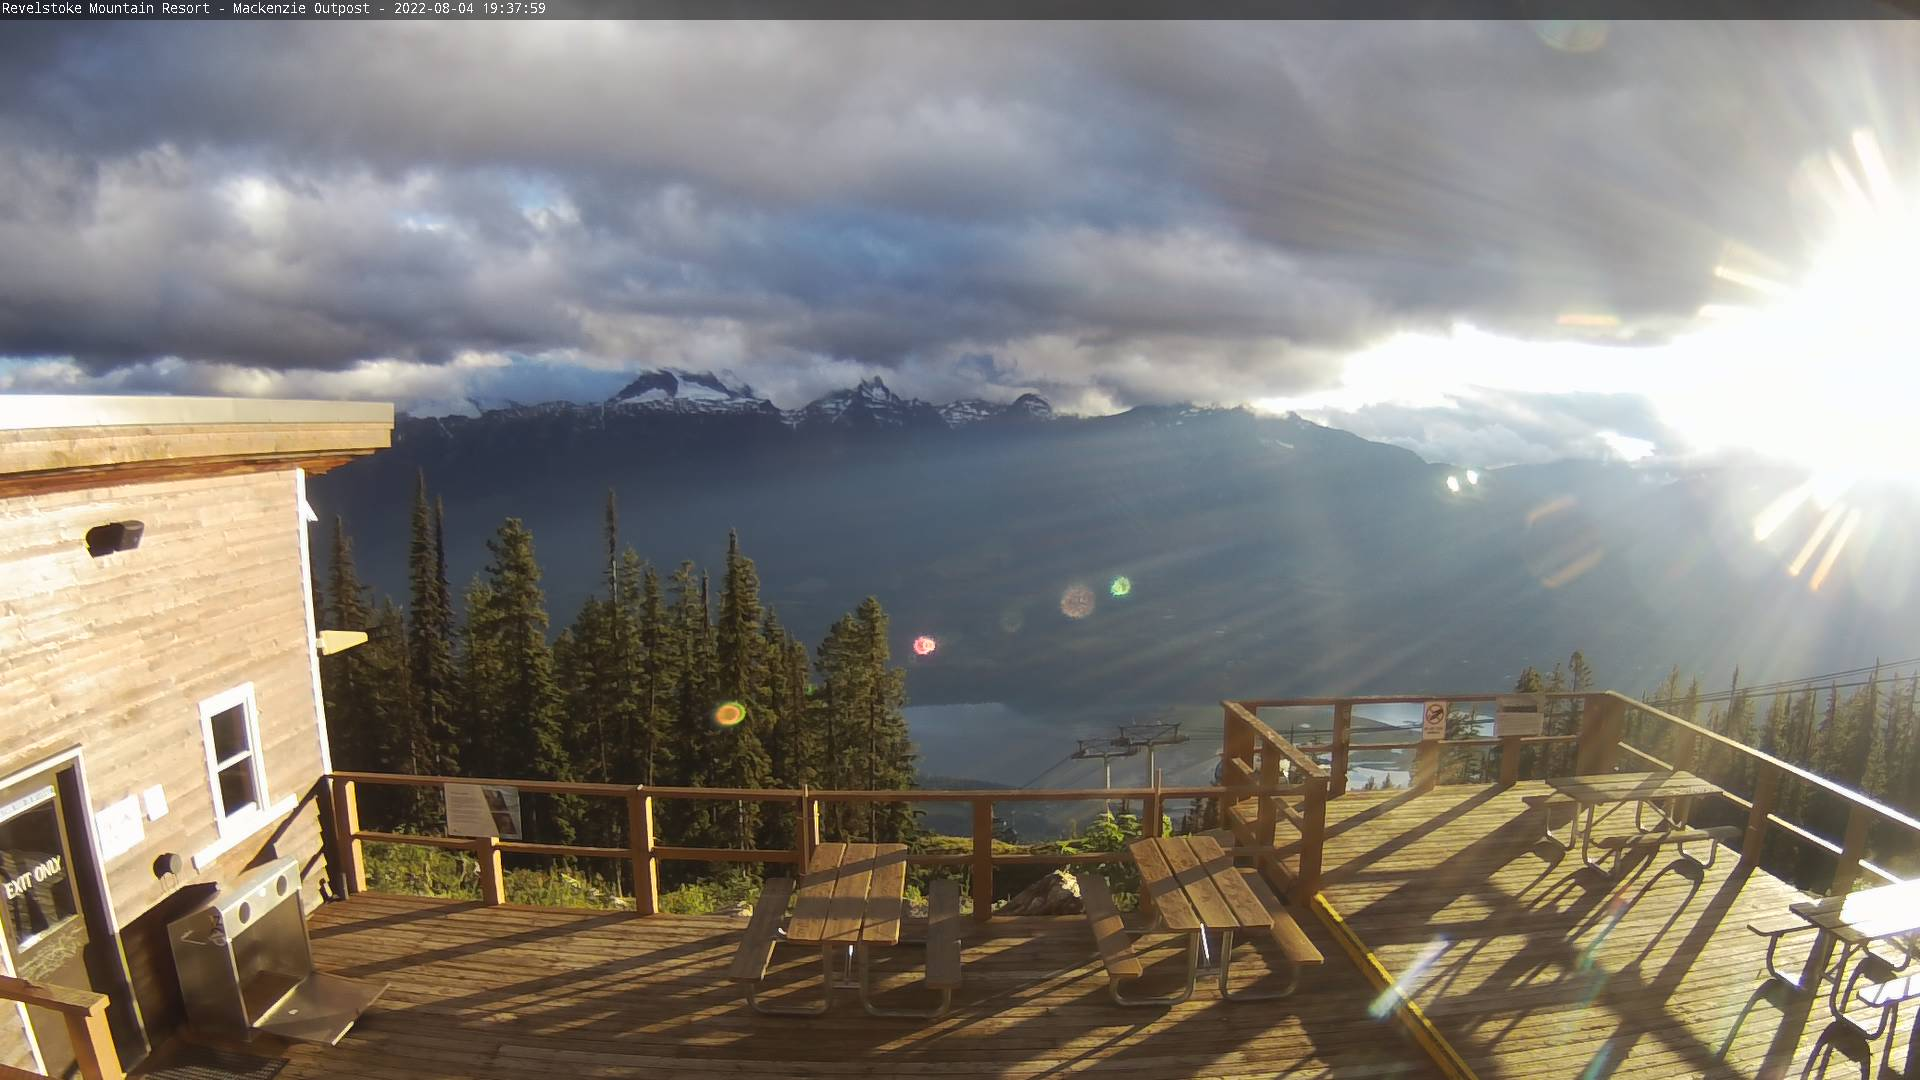 Mackenzie Outpost Webcam View